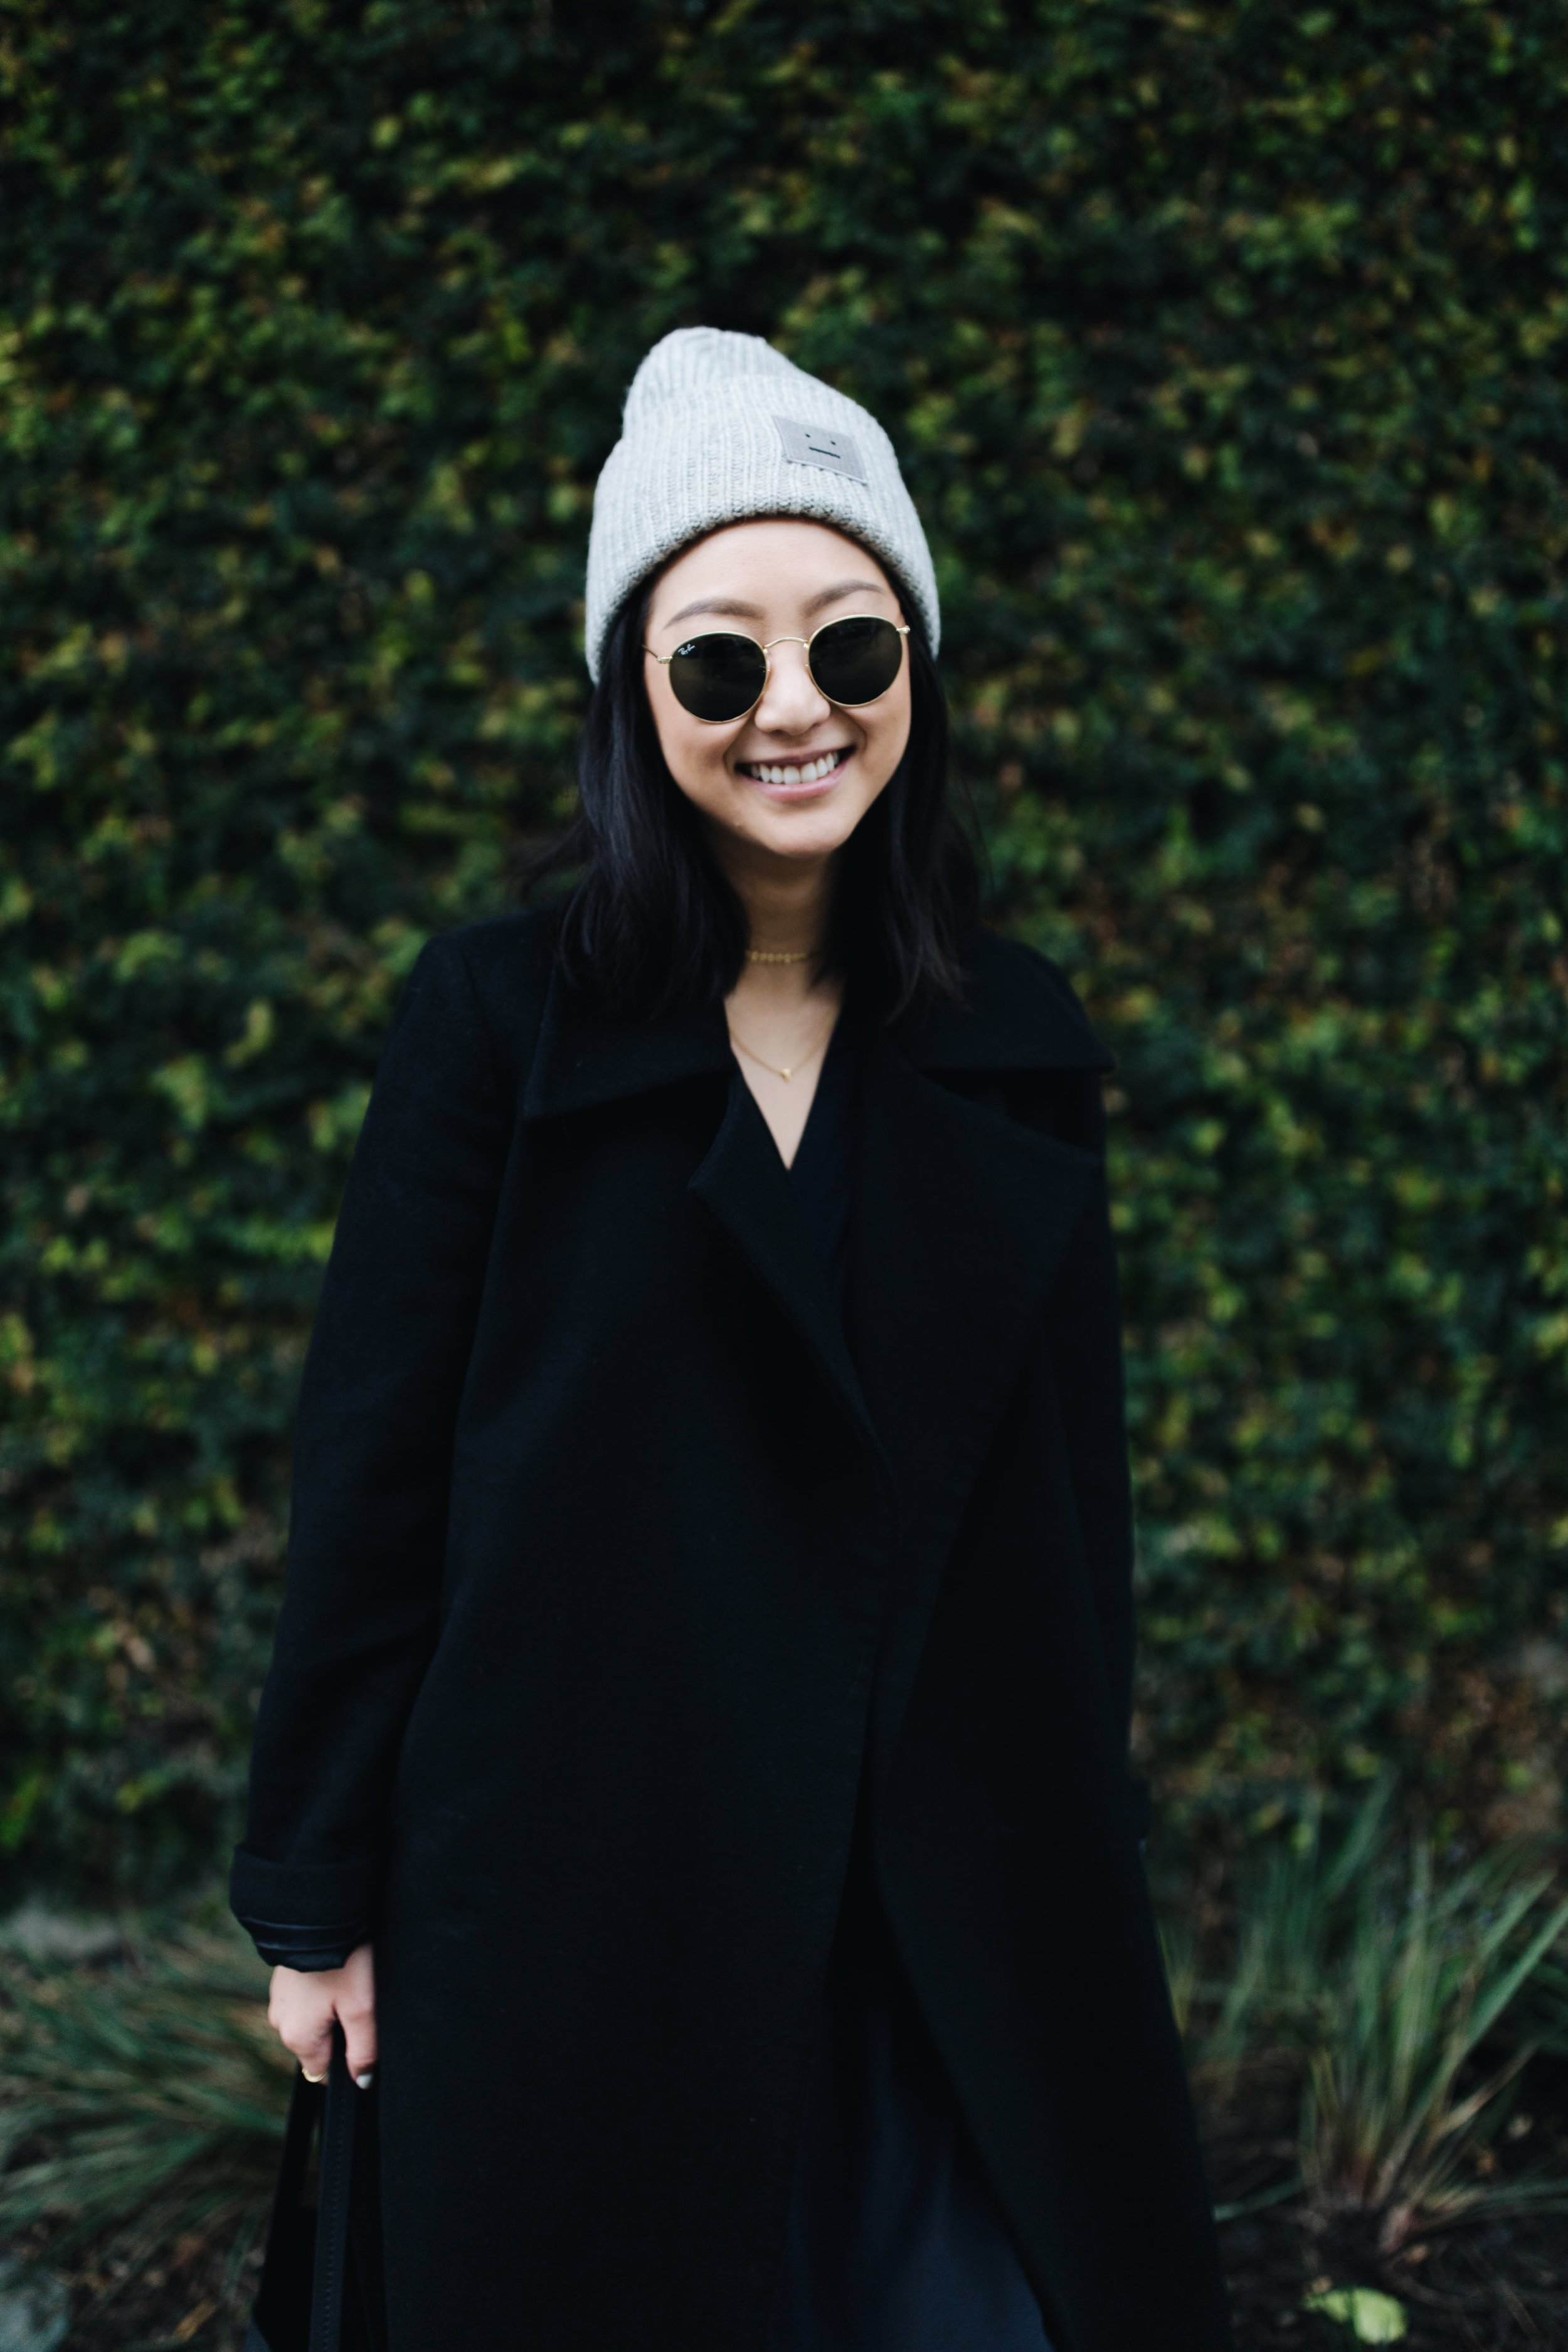 ACNE STUDIOS   beanie  / COS STORES  dress  / COMMON PROJECTS   sneakers  / CUSTOM-MADE  coat   PHOTOS BY  HAMEE HA